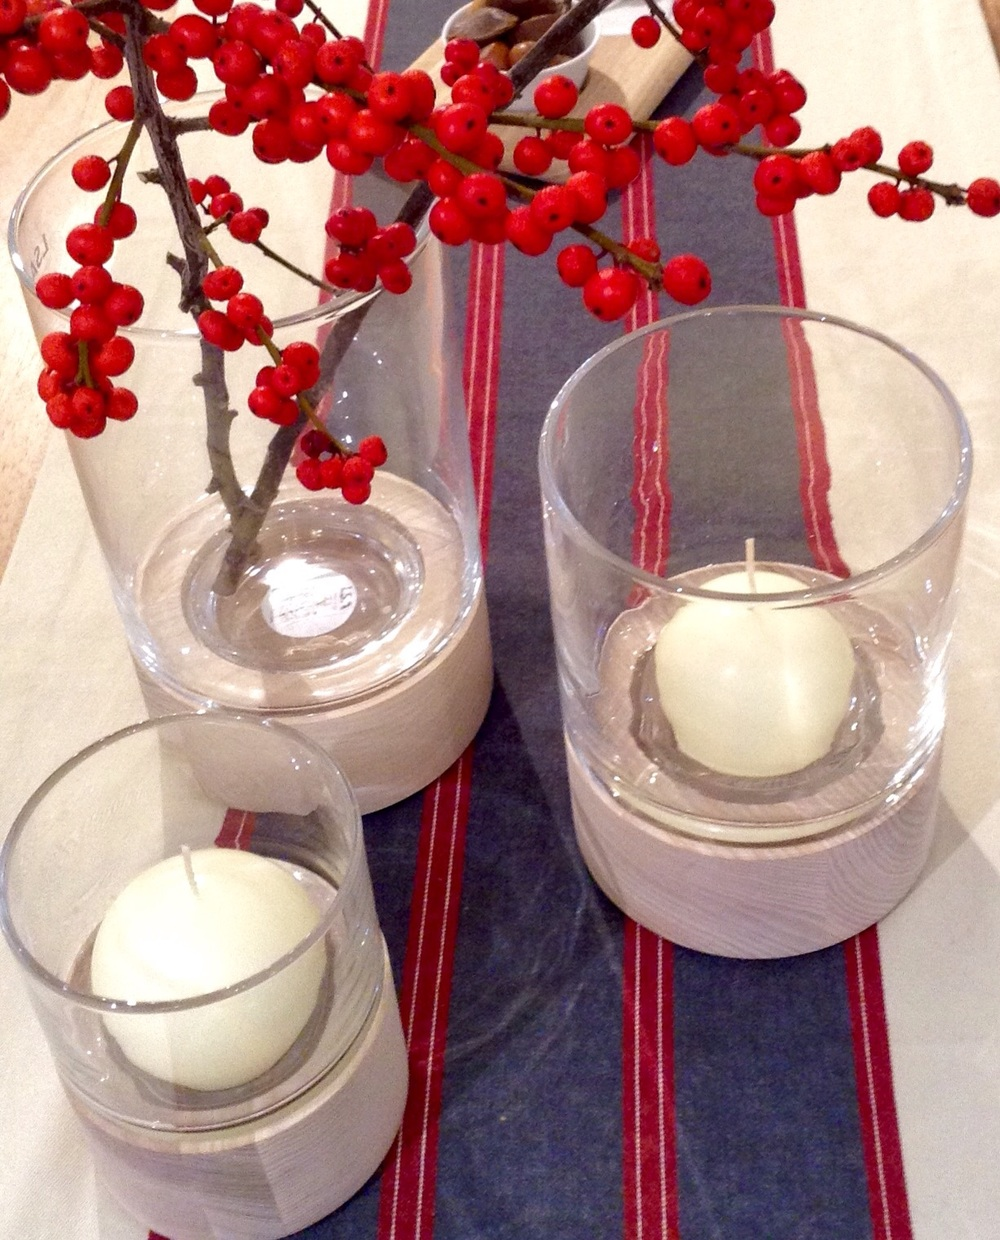 British made ash & hand blown glass, to be used for candles or flowers (we have used ilex berries for a seasonal feel) S £26.00, M £36.00, L £40.00